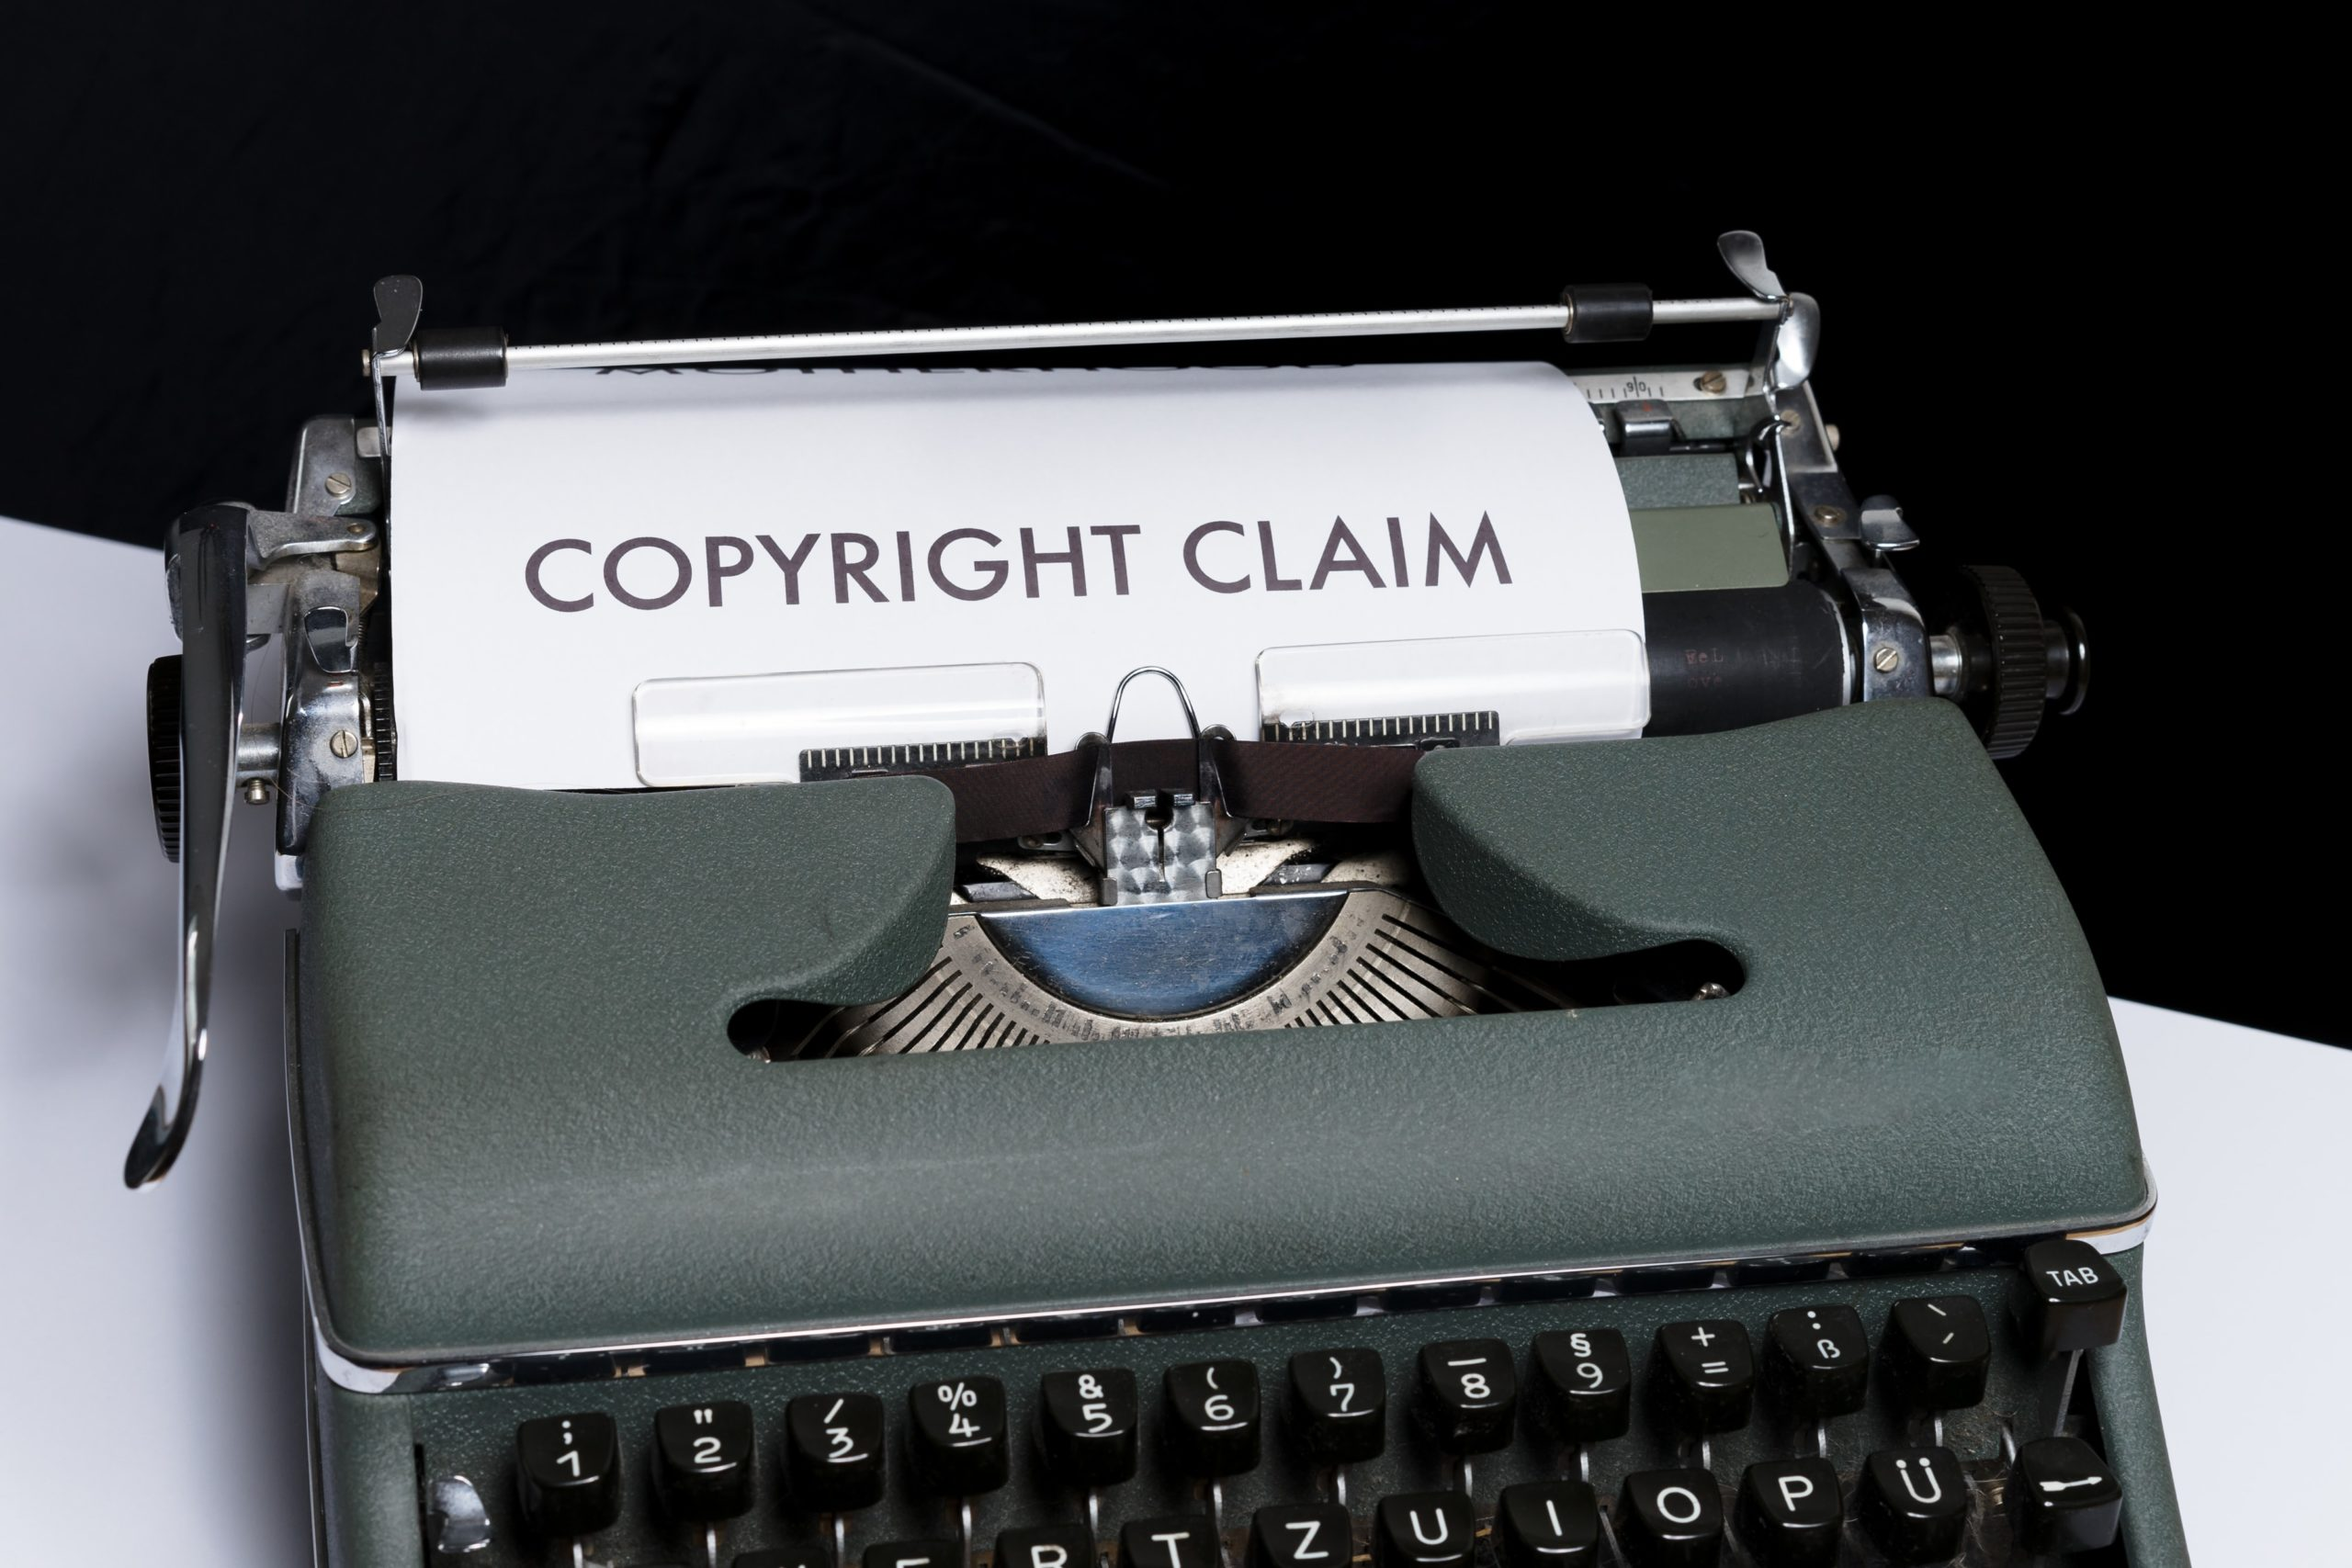 """Copyright Claim"" reads the paper inside the paper feed of the typewriter which copyright claim is included in the freelance contract"